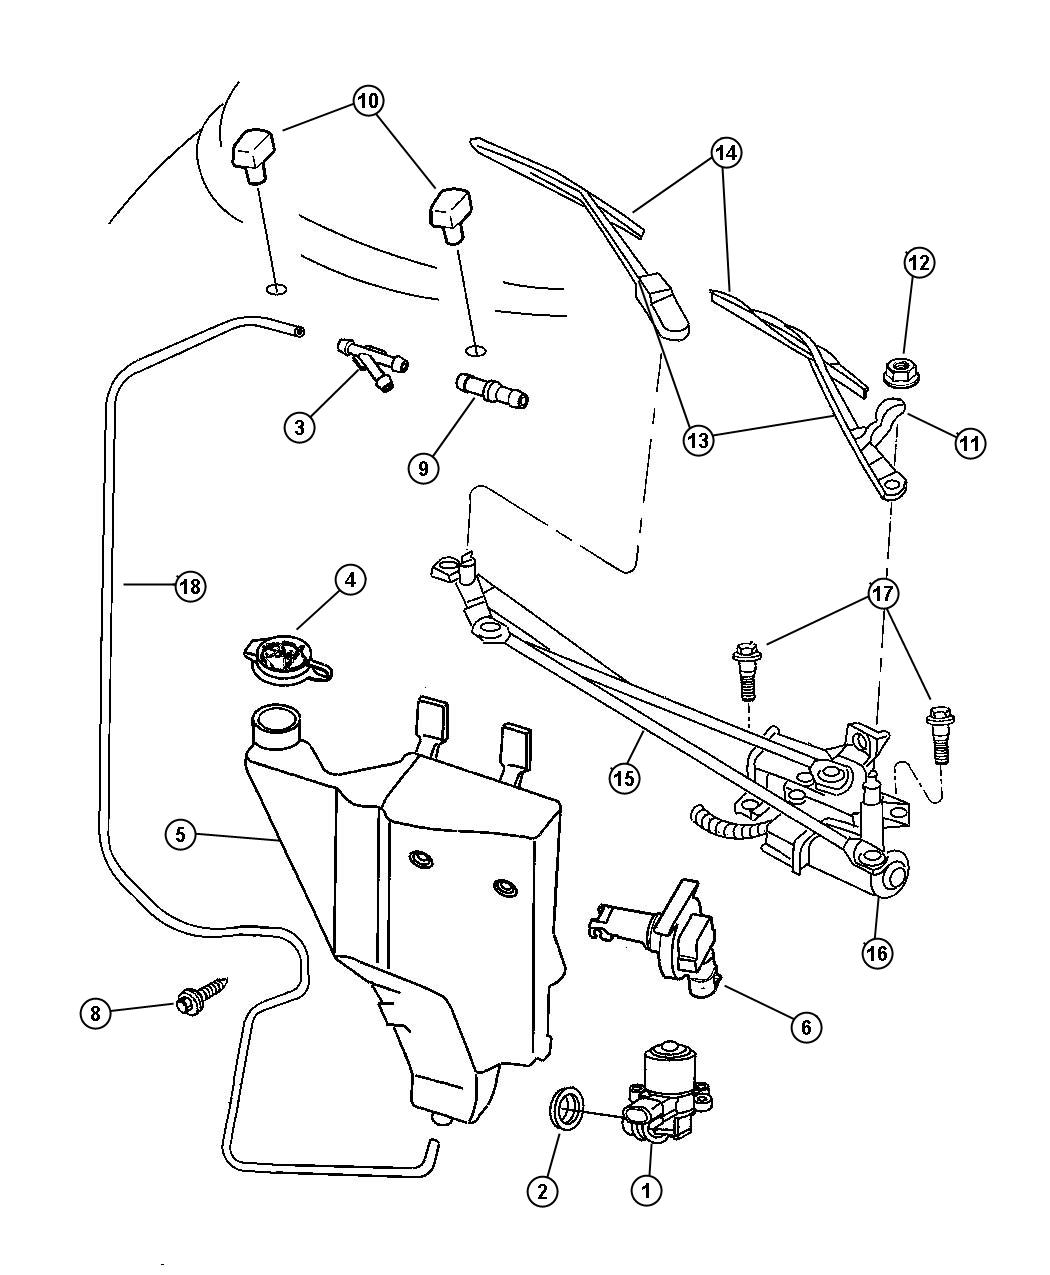 Windshield Wiper And Washer System